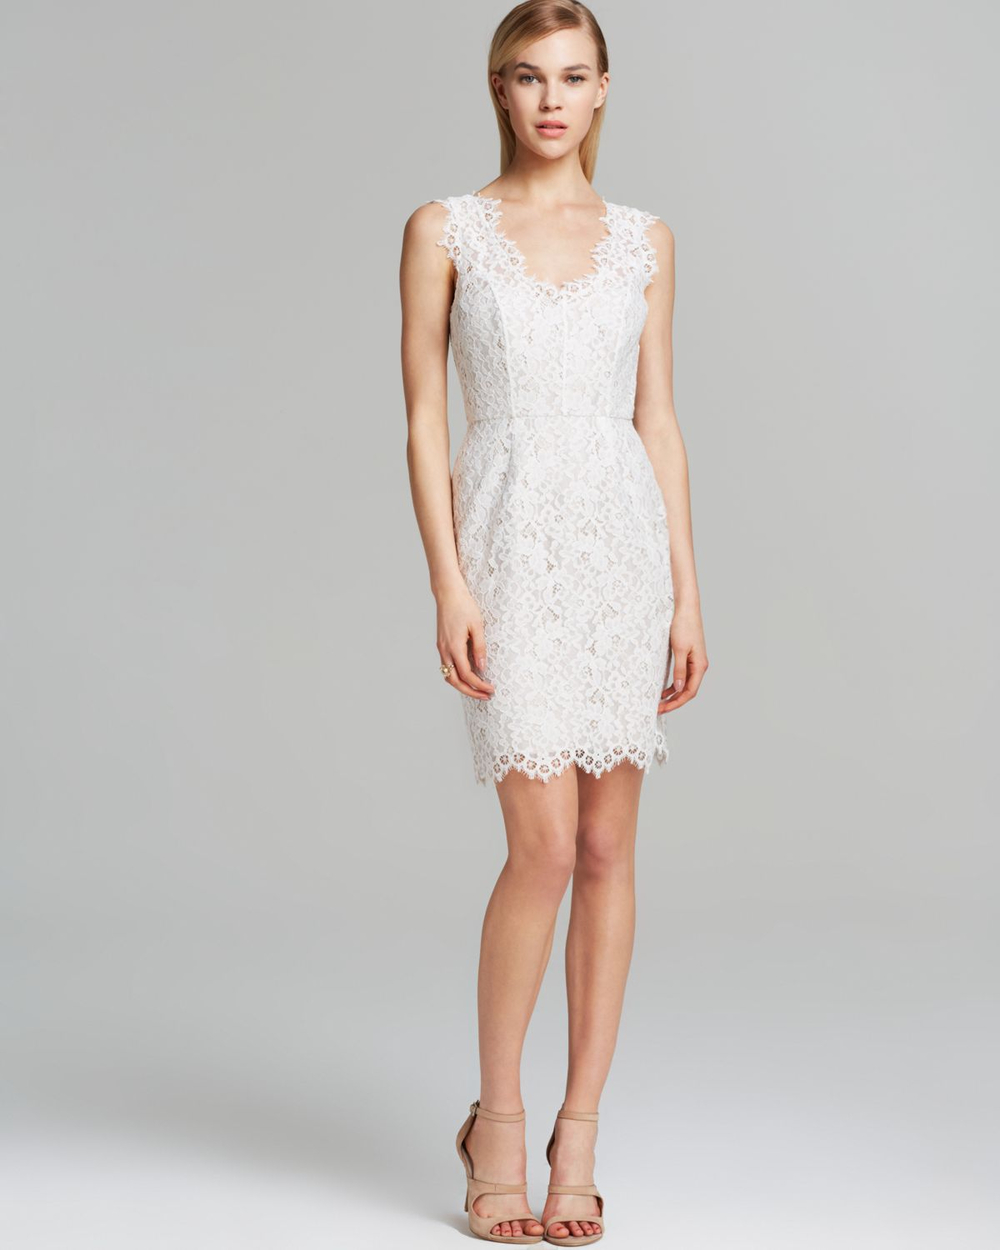 shoshanna-white-dress-sleeveless-rose-floral-lace-scalloped-hem-mini-dresses-product-1-20091701-0-903627475-normal.jpeg